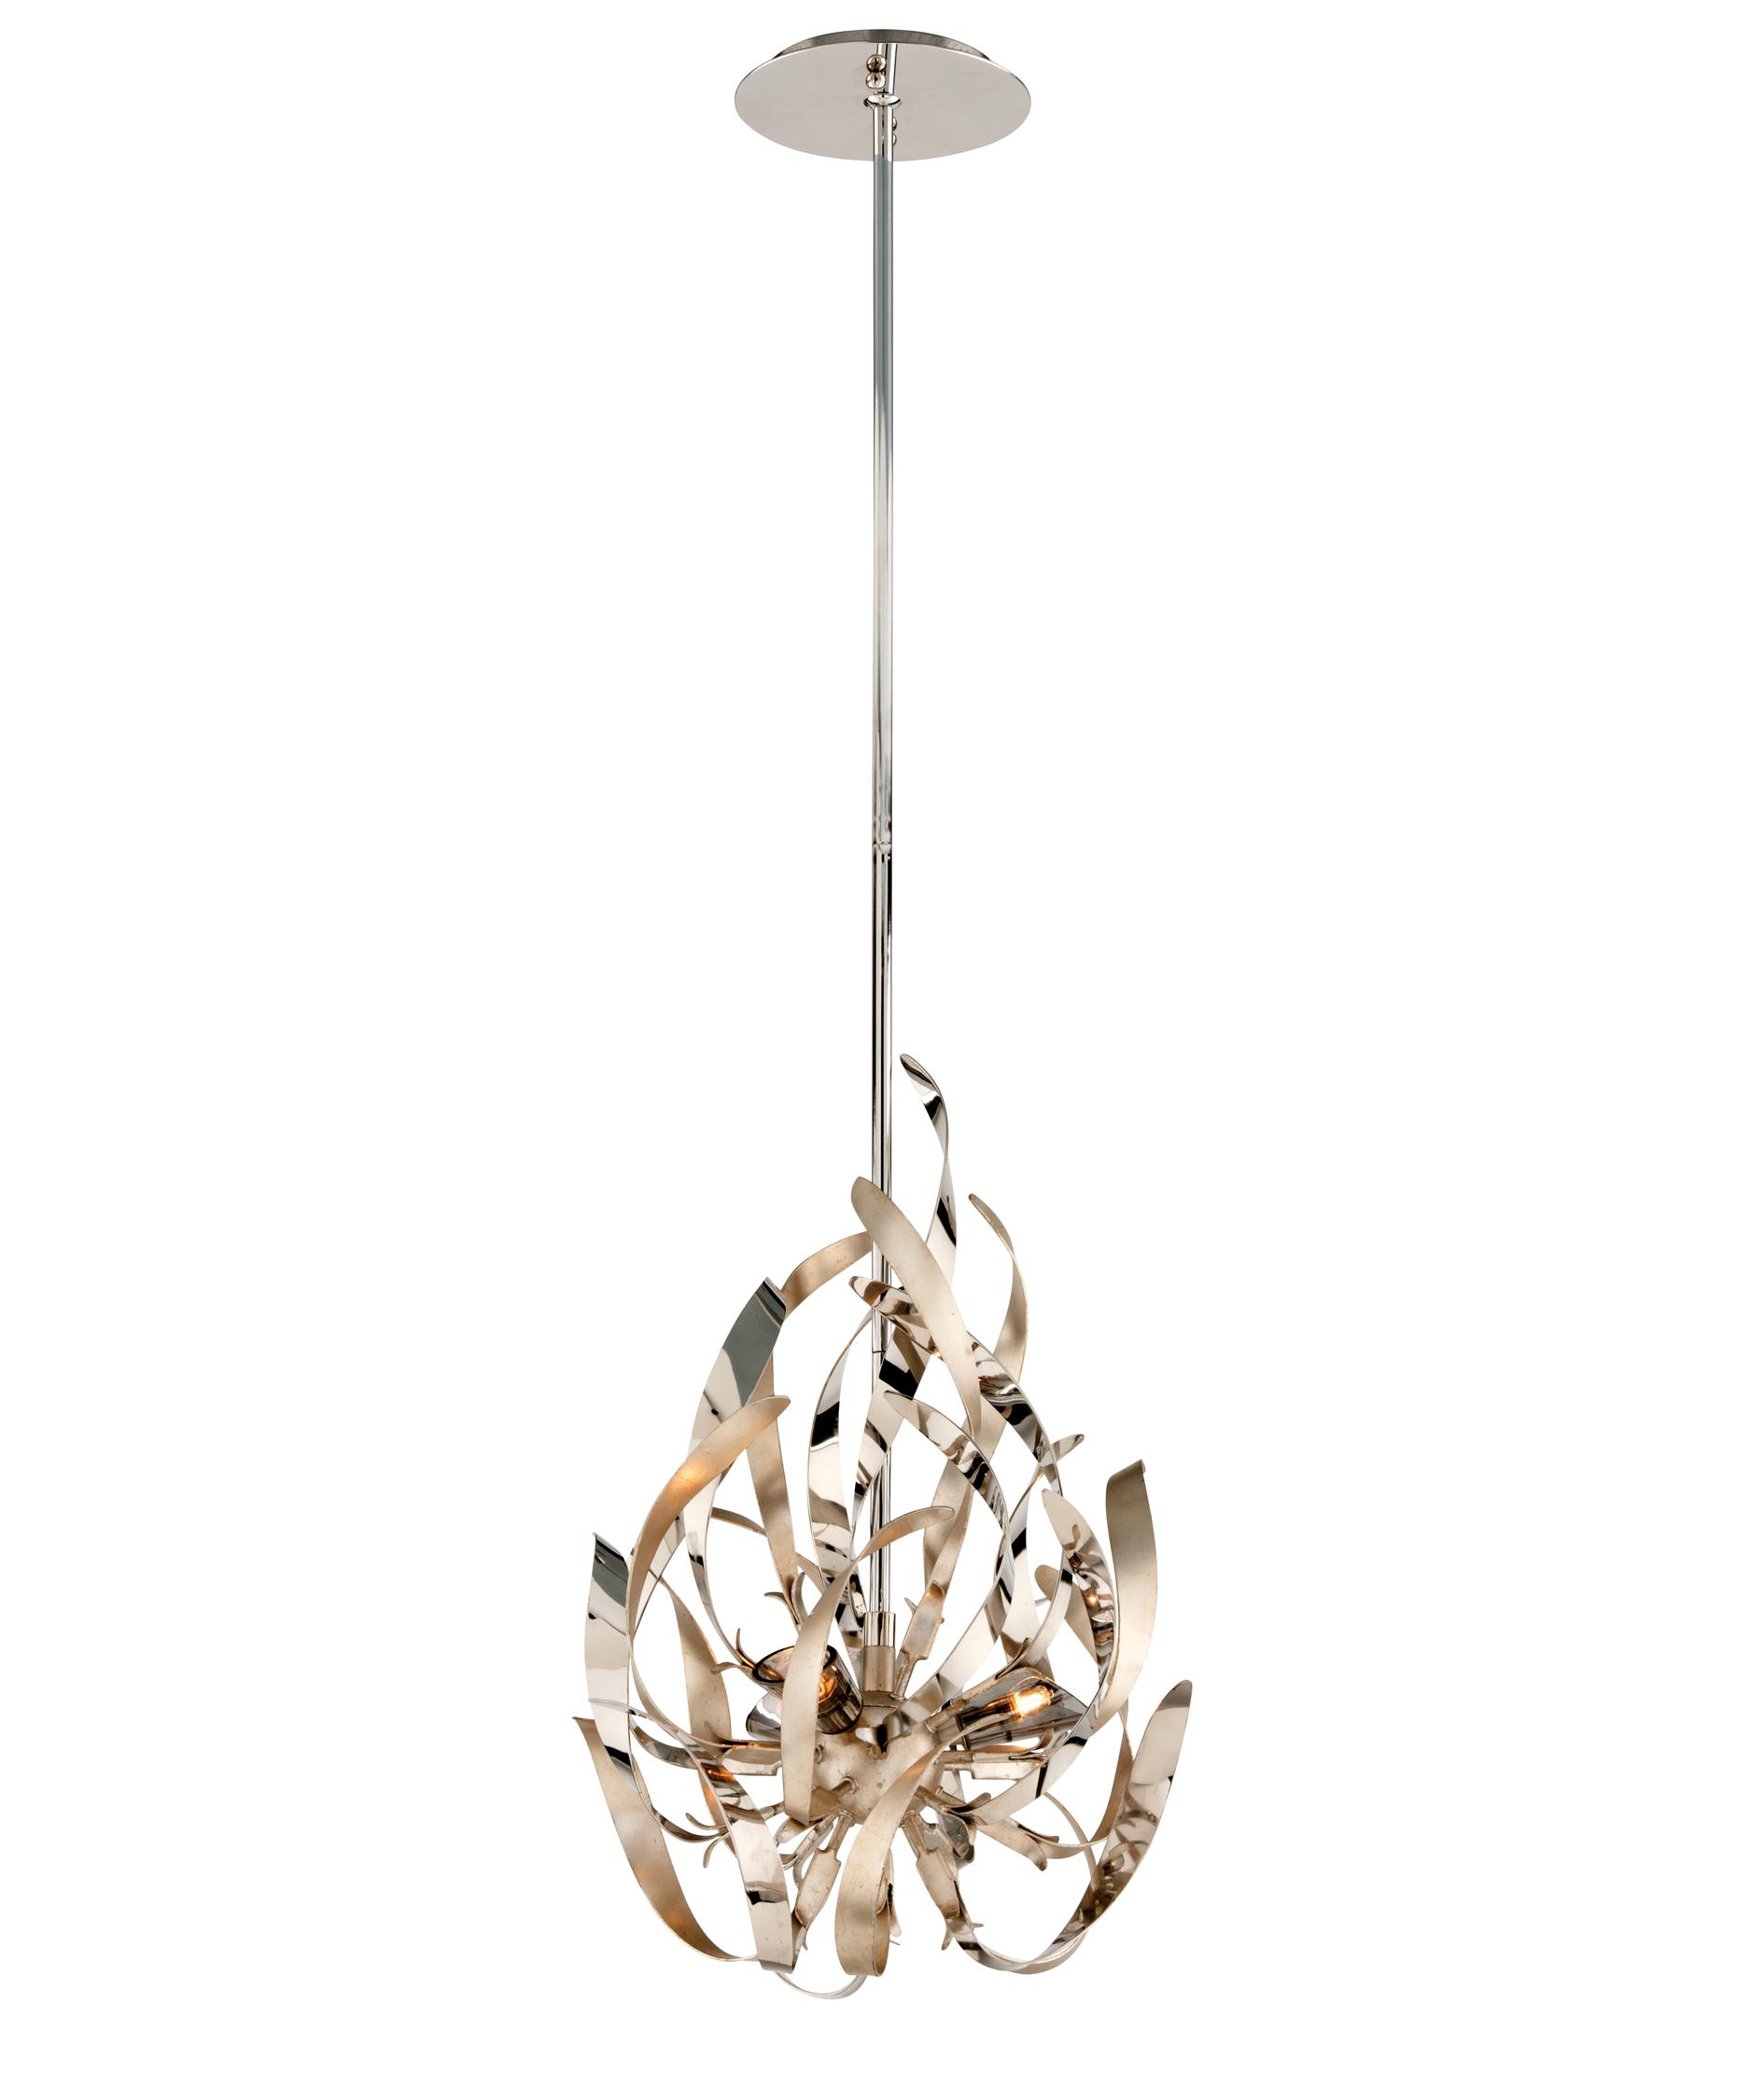 shown in silver leaf and polished stainless finish - Corbett Lighting